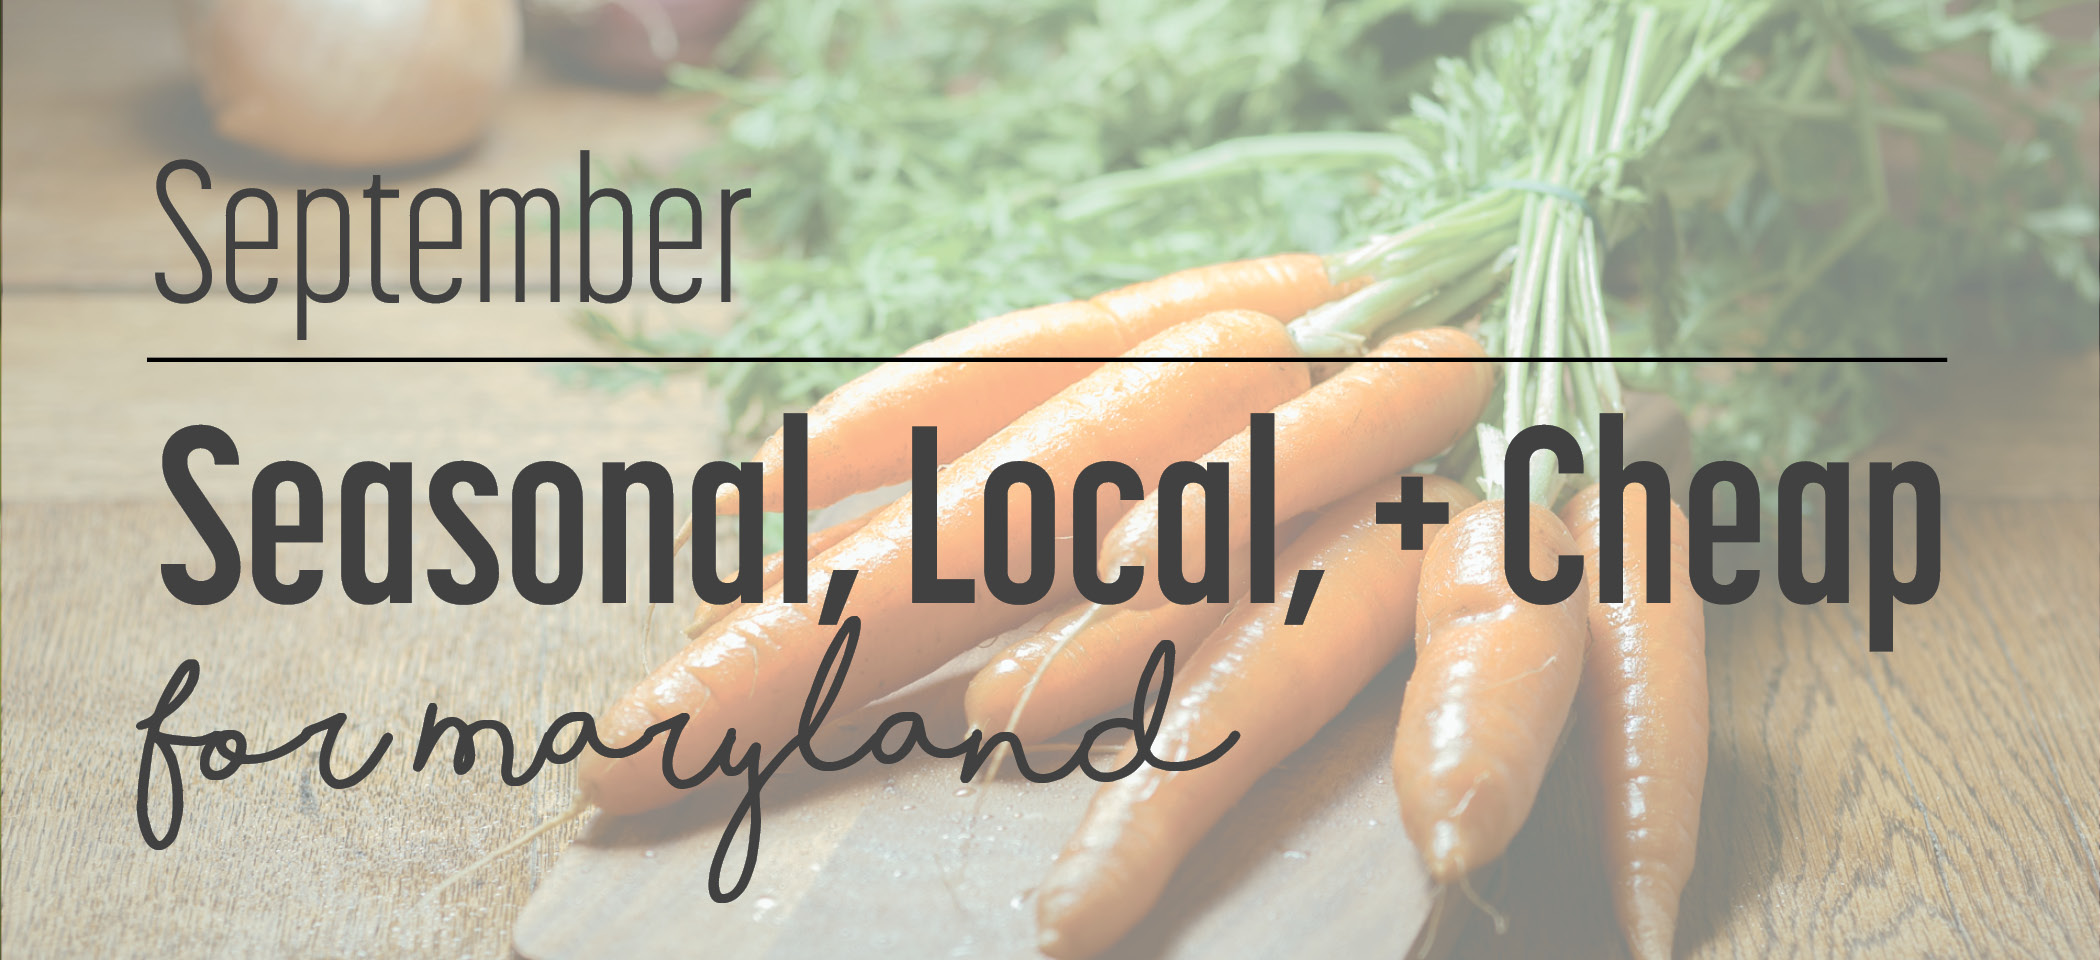 Seasonal, Local, Cheap: September